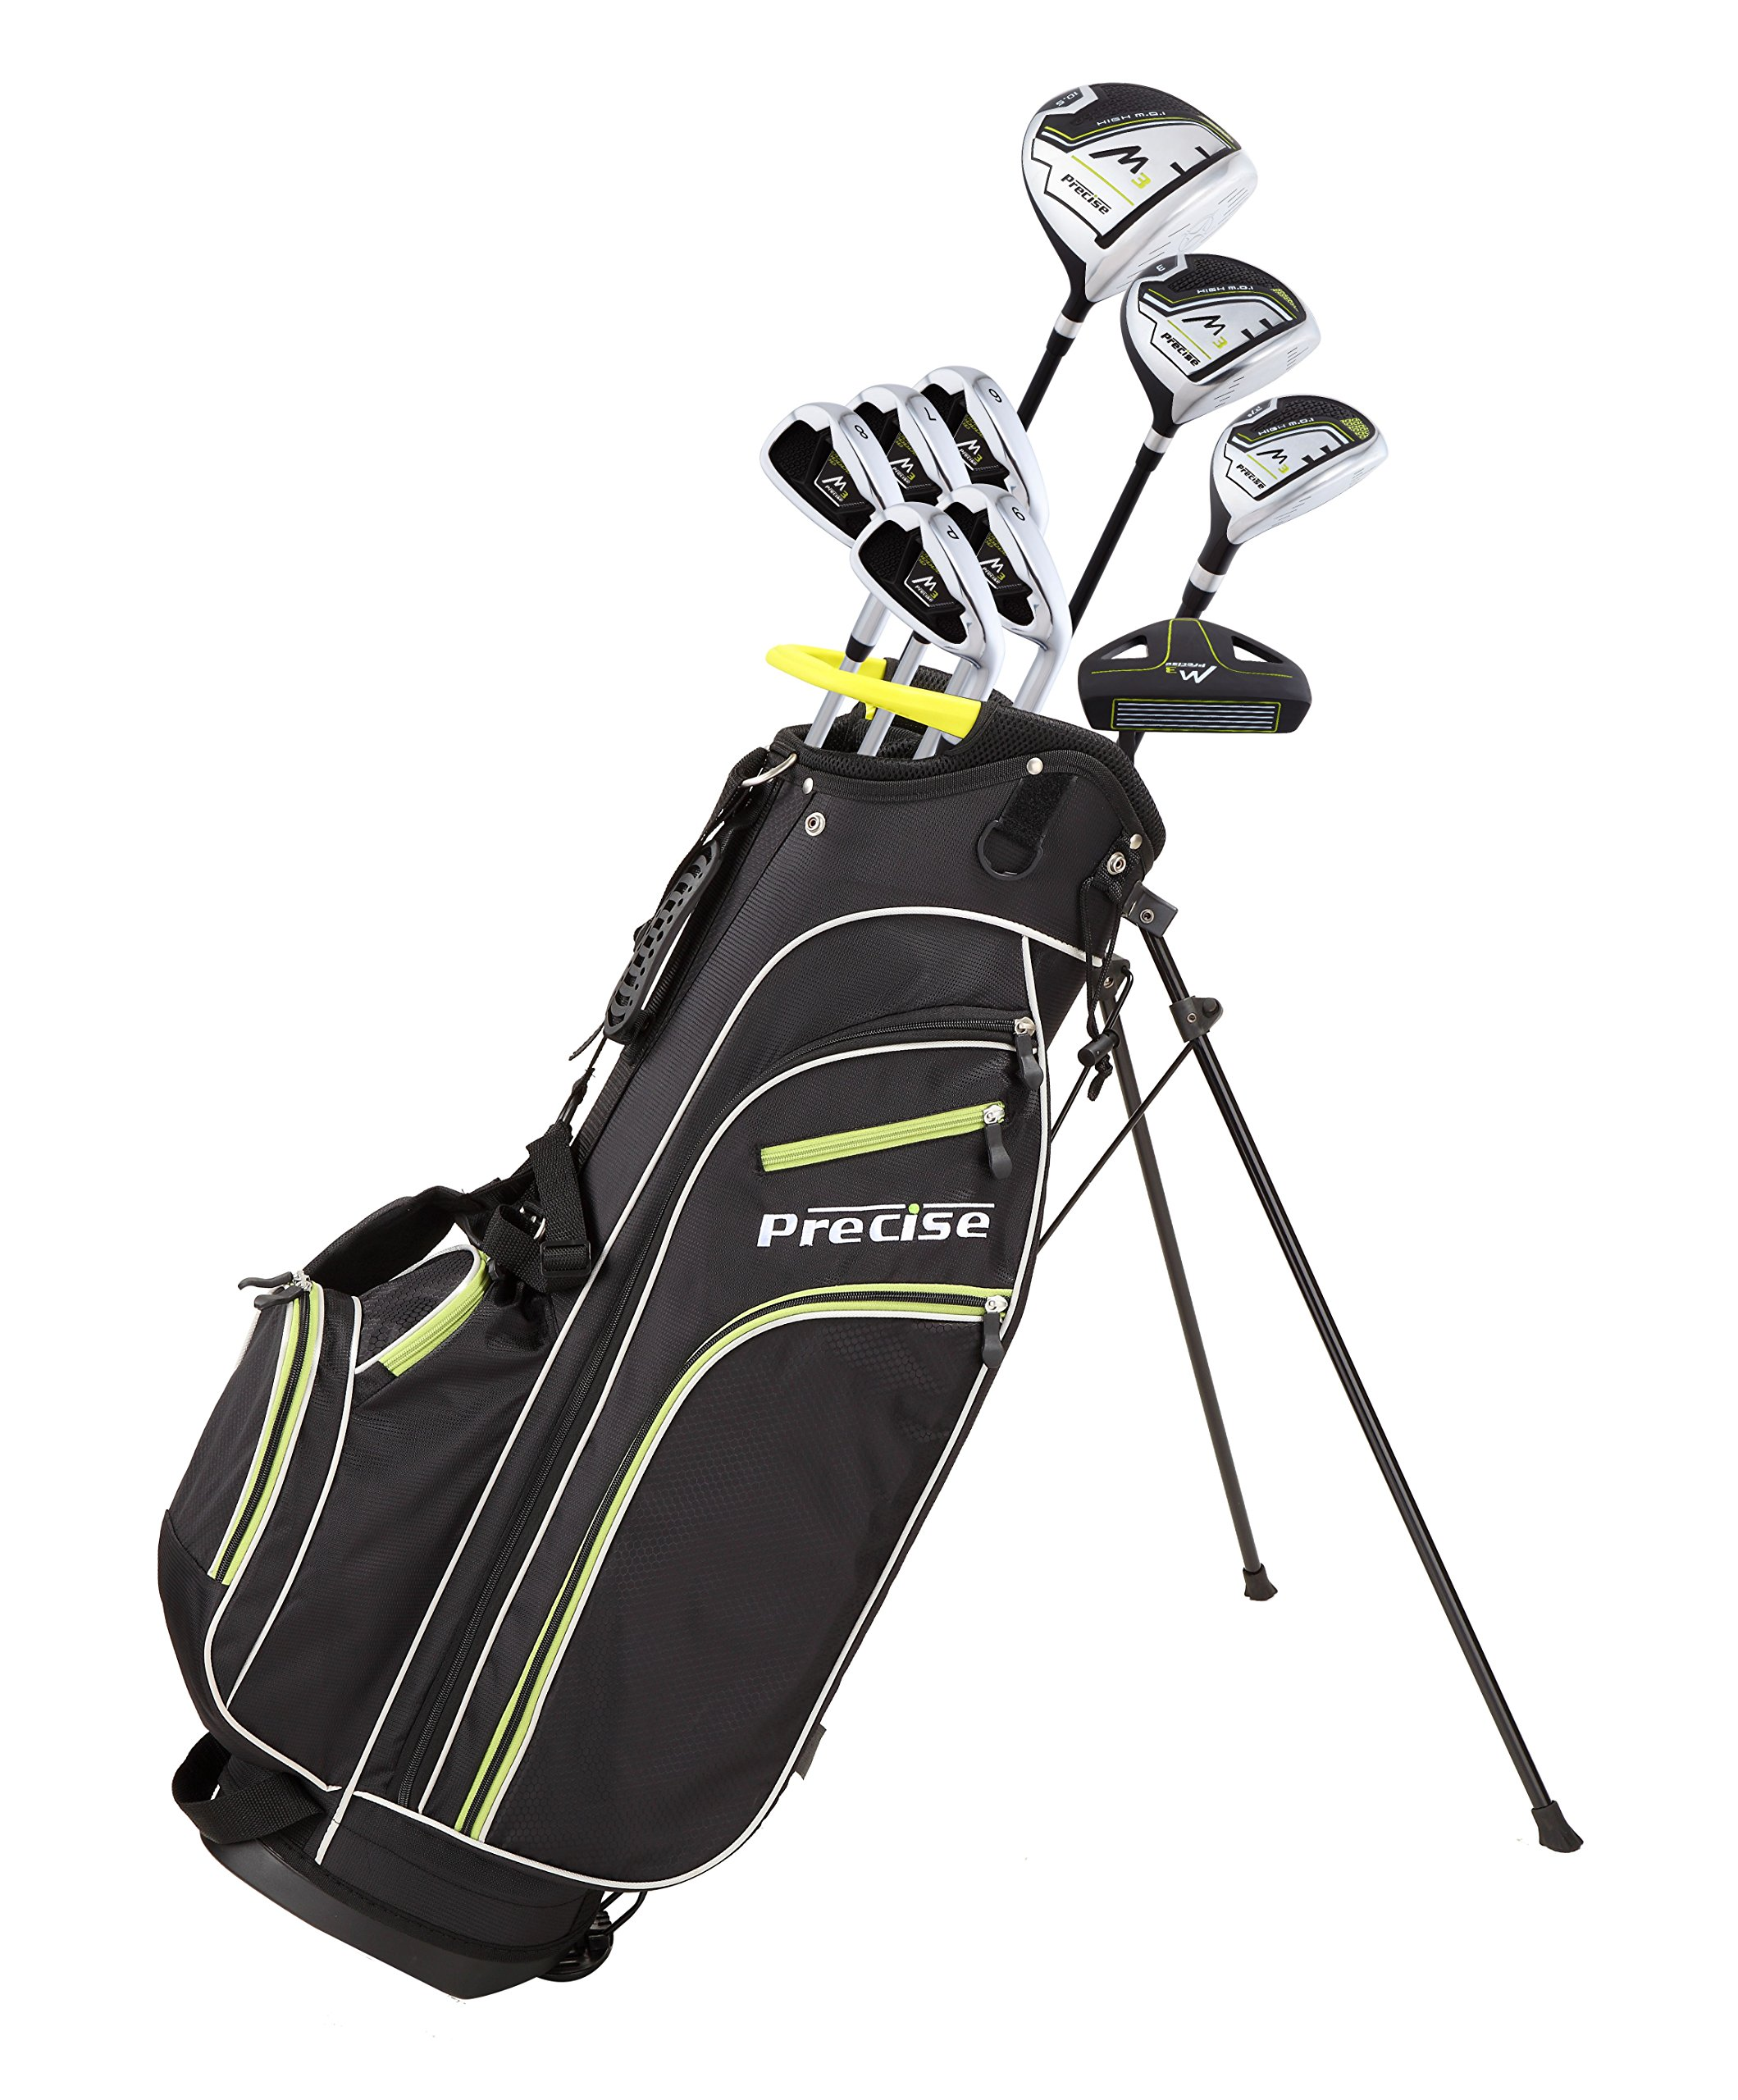 Quality Men's Right Handed Complete Golf Club Set for Tall Men (Height 6'1'' to 6'4'') Includes: 460cc Driver, 3 Wood, 21 Hybrid, 6, 7, 8, 9, PW Irons, Putter, Deluxe Stand Bag & 3 Headcovers by Precise